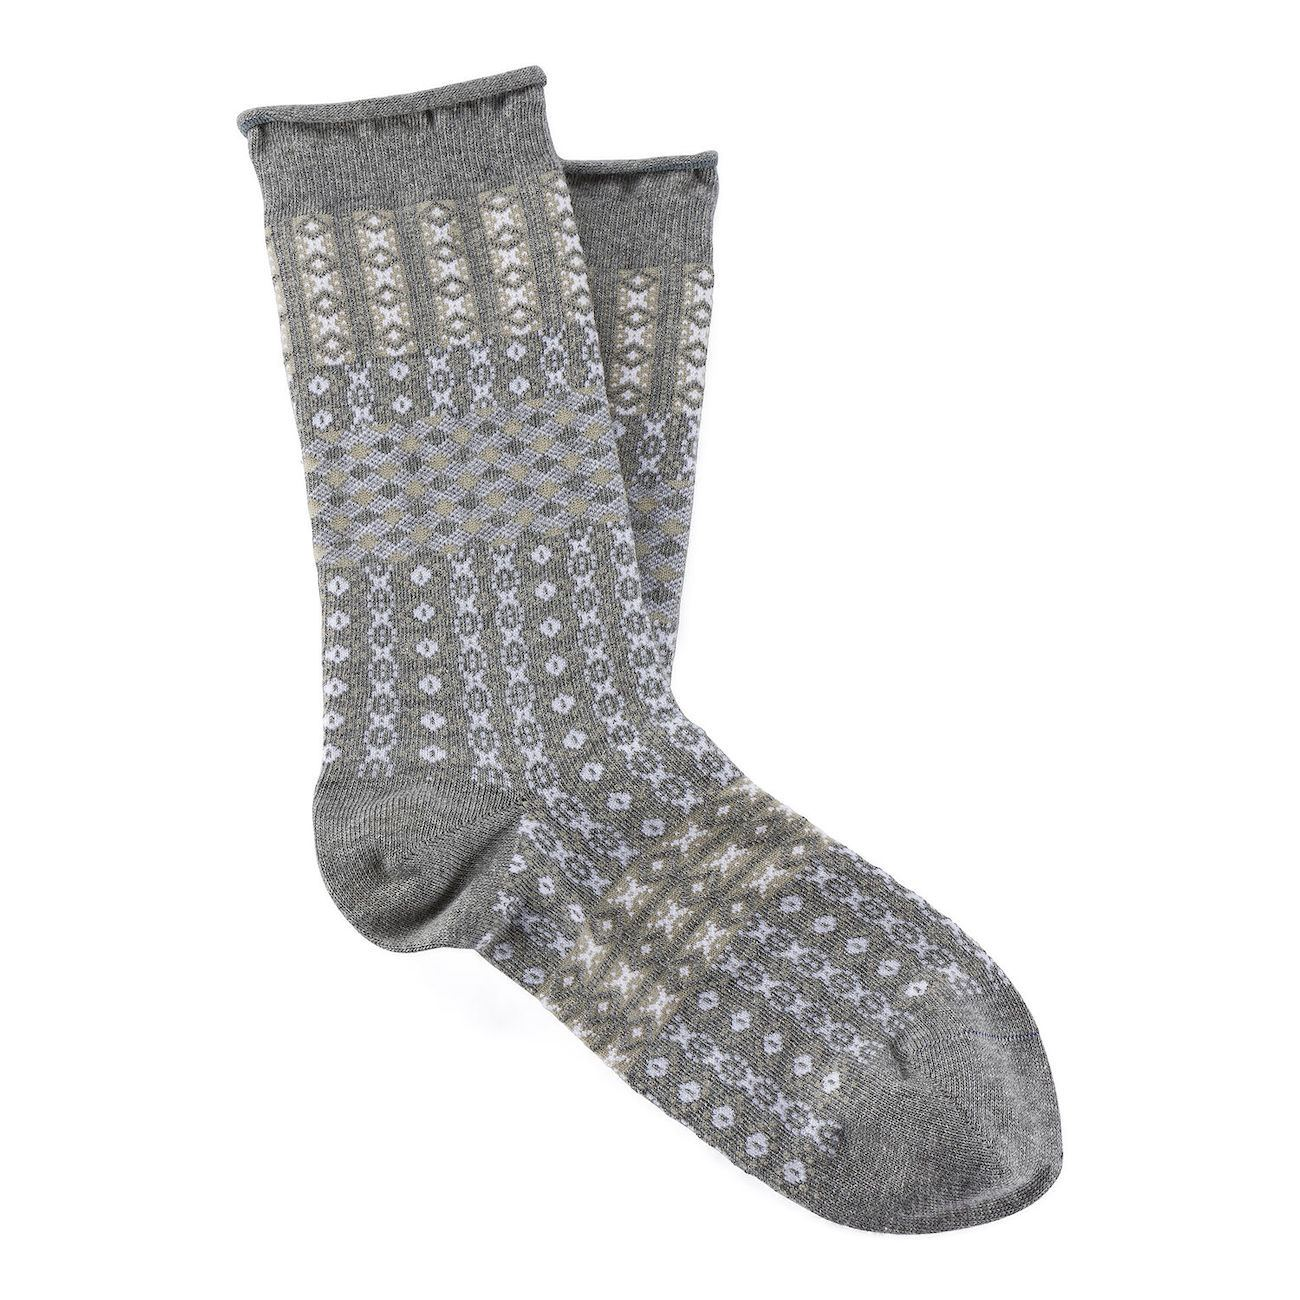 Birkenstock Socks, Cotton Ethno Summer W, Grey mel, 36-38 EU Socks Birkenstock Socks Grey mel 36-38 EU